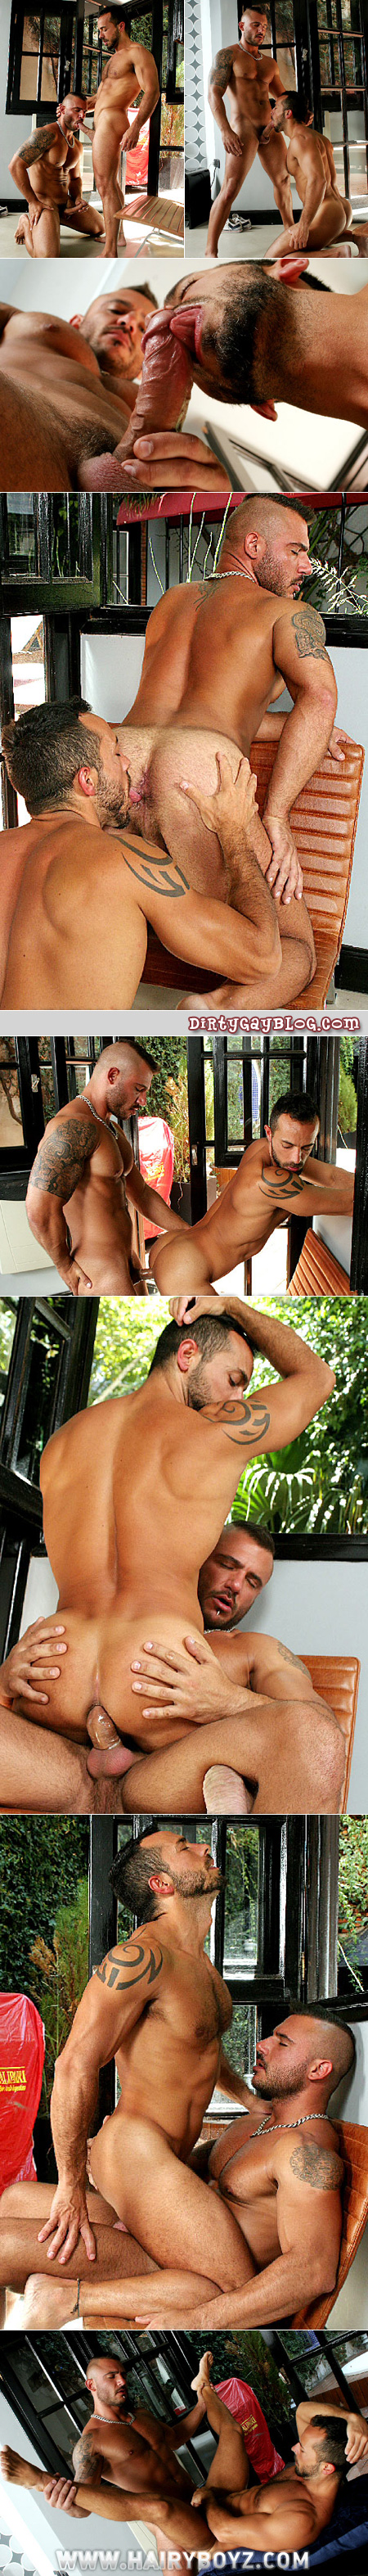 Two gorgeous, muscular men have masculine gay sex in the outdoor guest house.